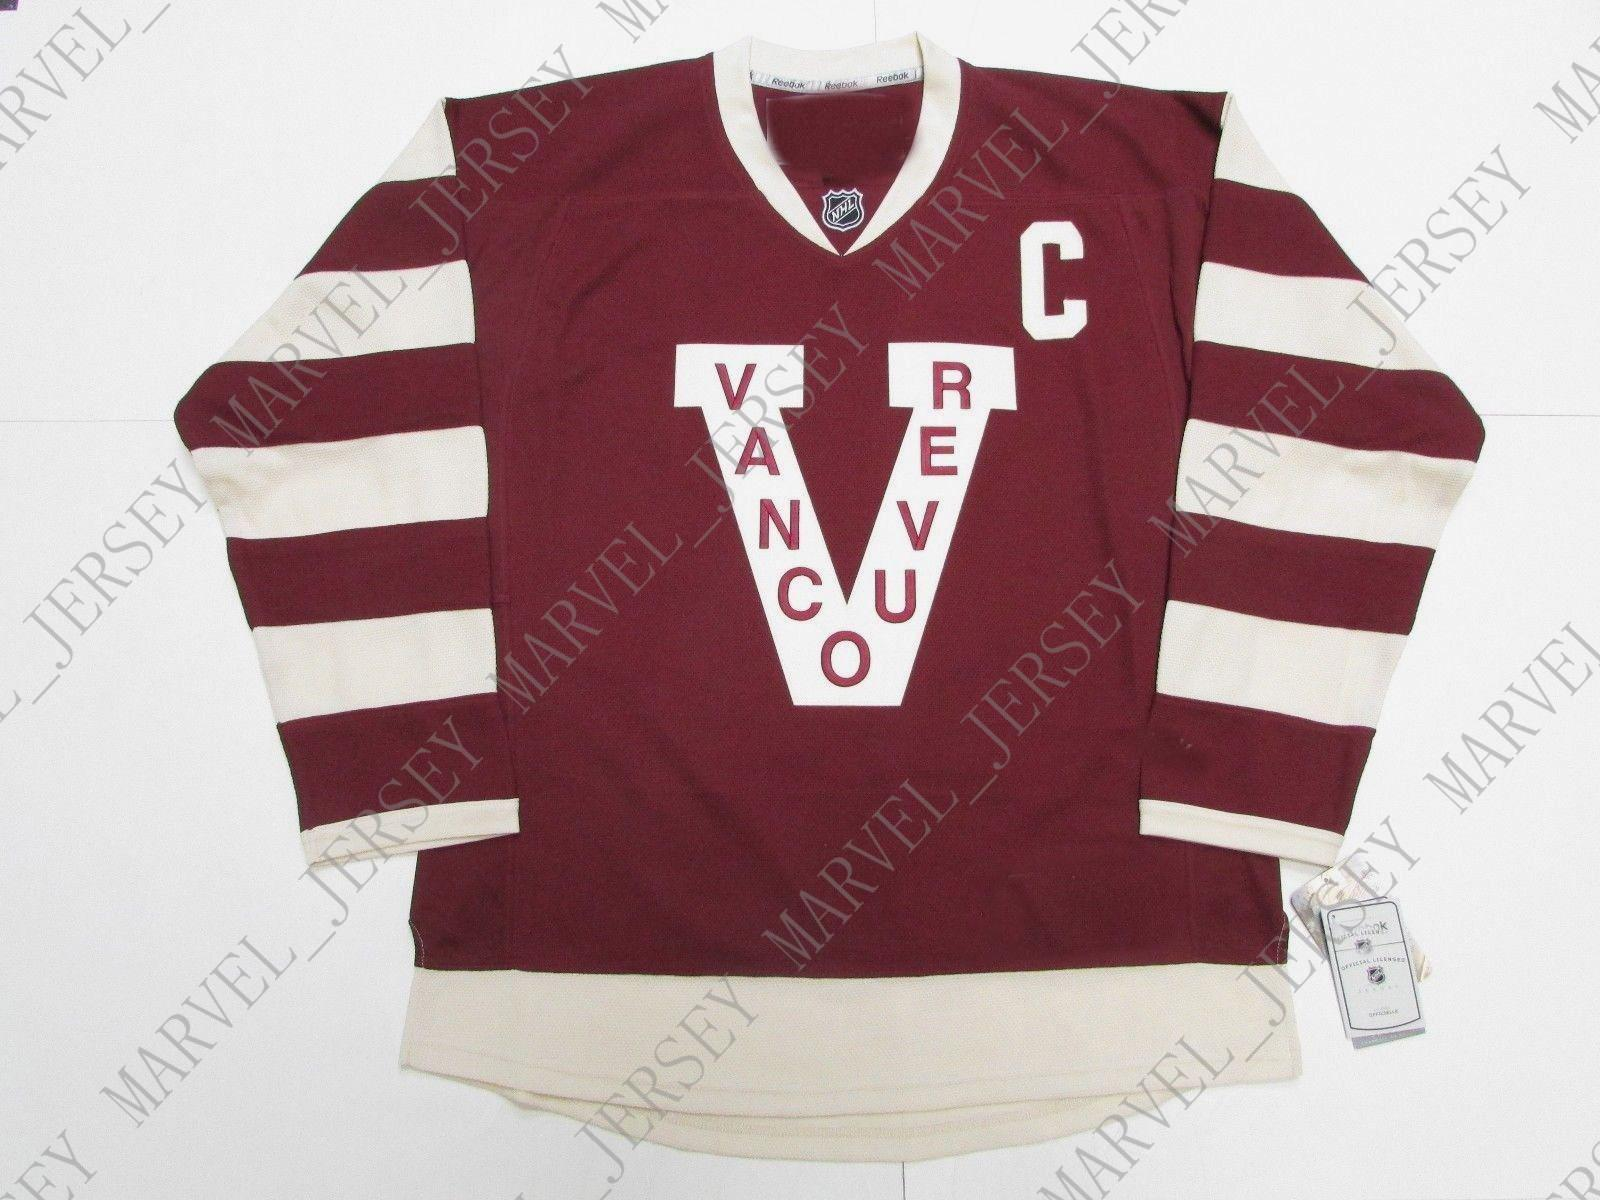 d5205c532a0 2019 Cheap Custom TREVOR LINDEN VANCOUVER CANUCKS MILLIONAIRES PREMIER HOCKEY  JERSEY Stitch Add Any Number Any Name Mens Hockey Jersey XS 5XL From ...